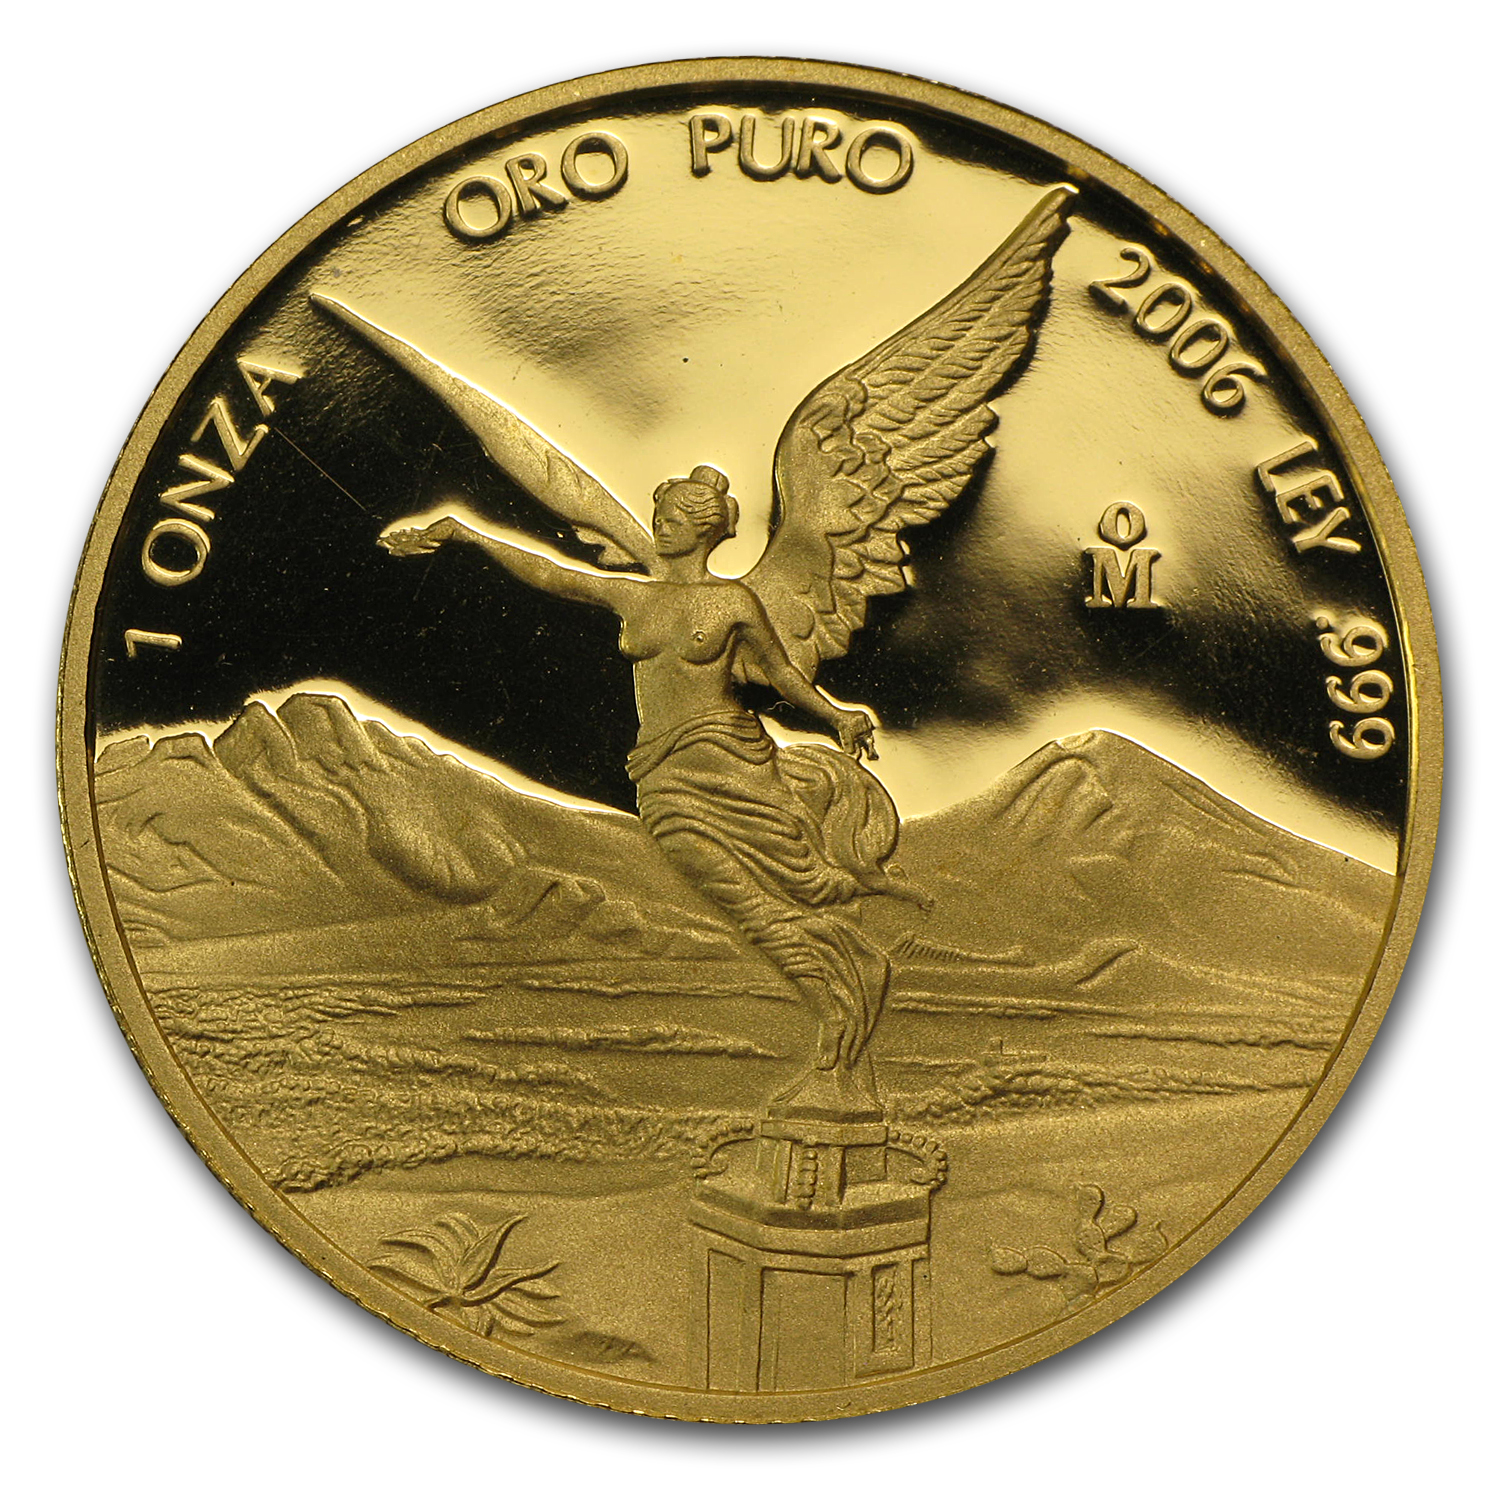 2006 Mexico 1 oz Proof Gold Libertad